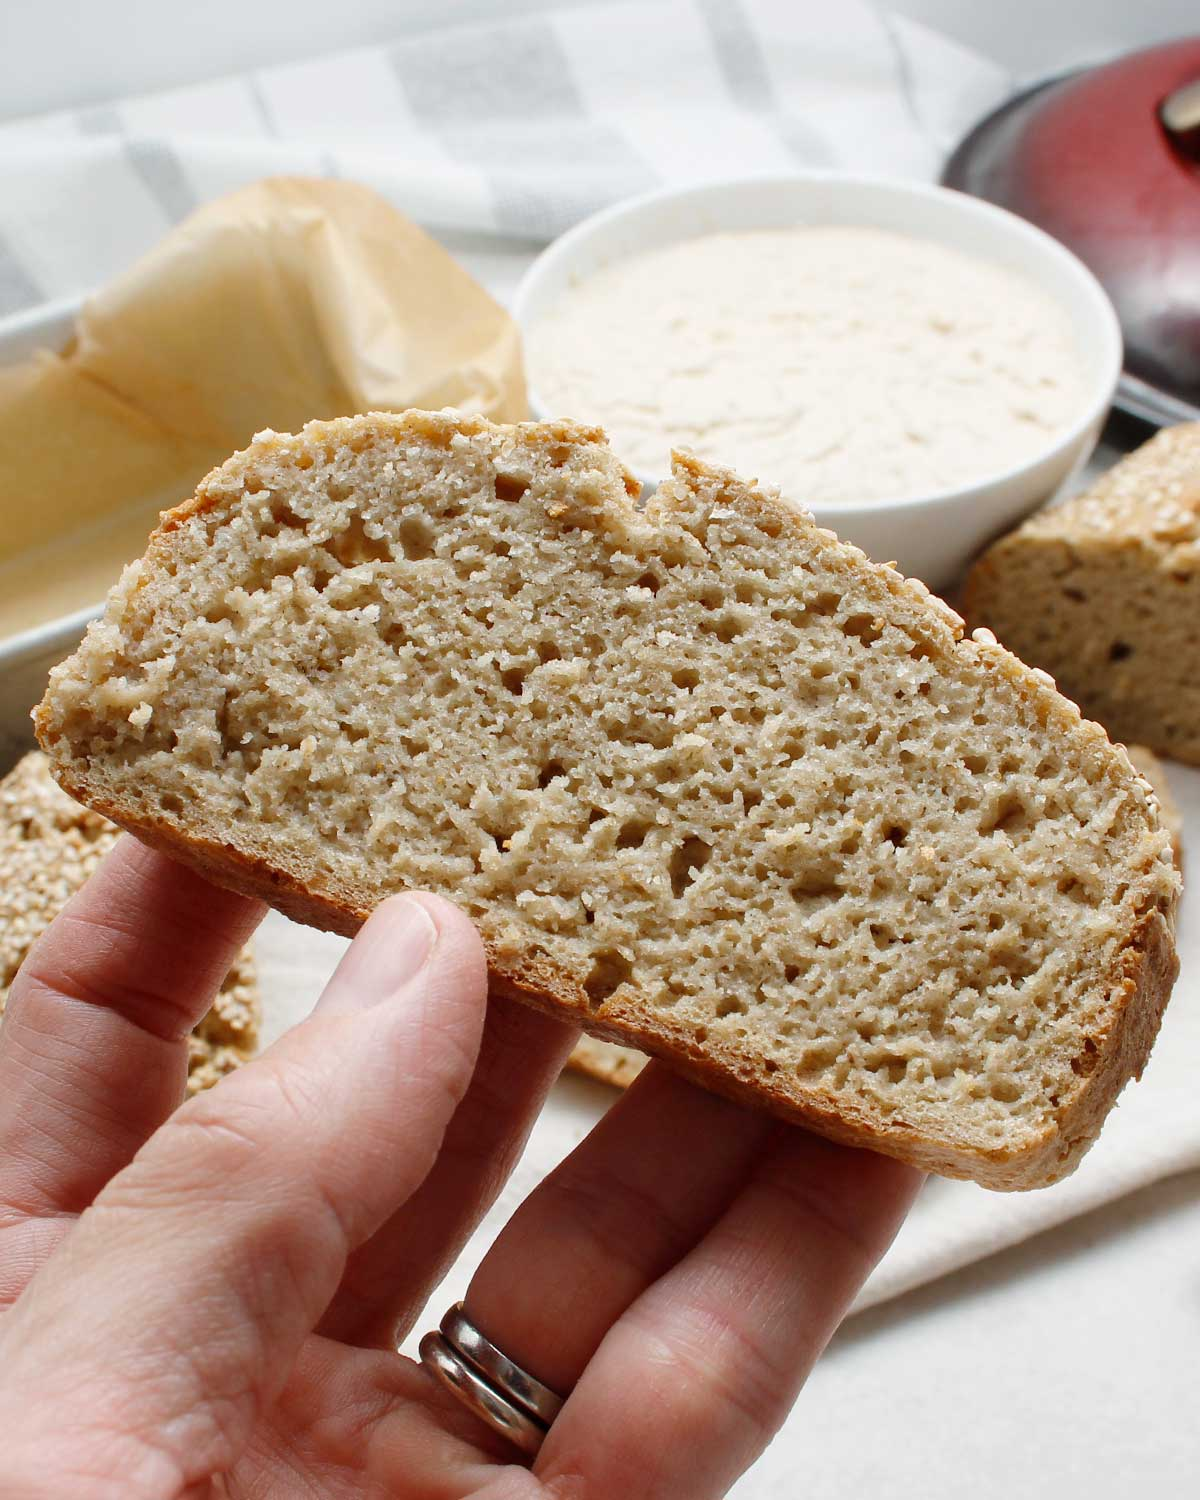 A gluten-free sourdough slice prepared with only 4 ingredients.